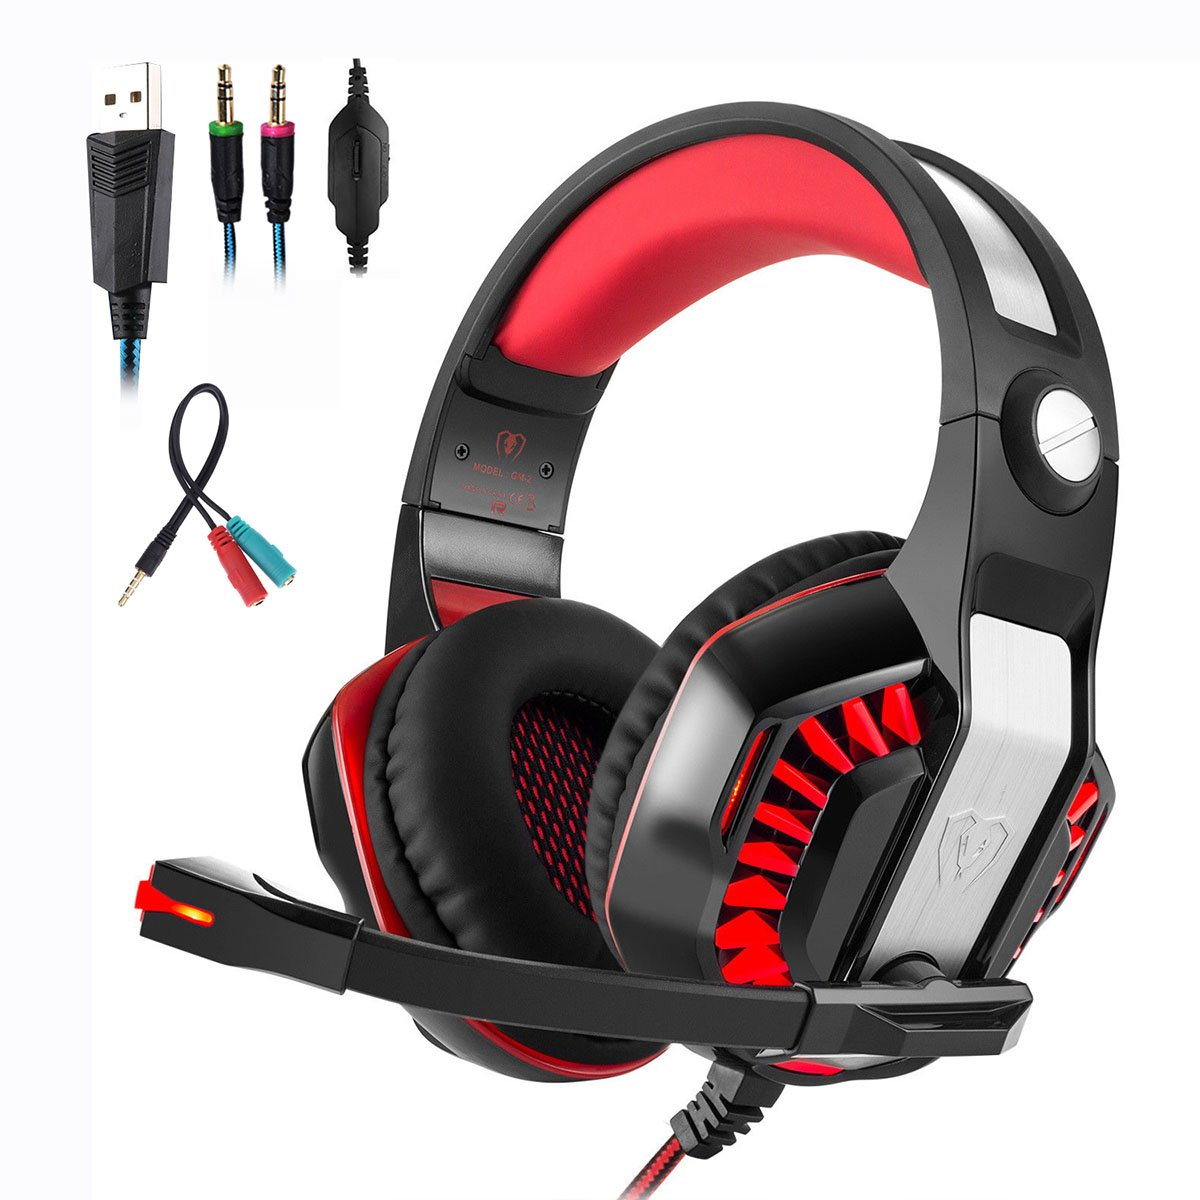 Mengshen 3.5mm Stereo Gaming Headset - with Microphone and LED Light for PC, PS4 and Xbox one - Designed for Computer Gamer, GM2 Red